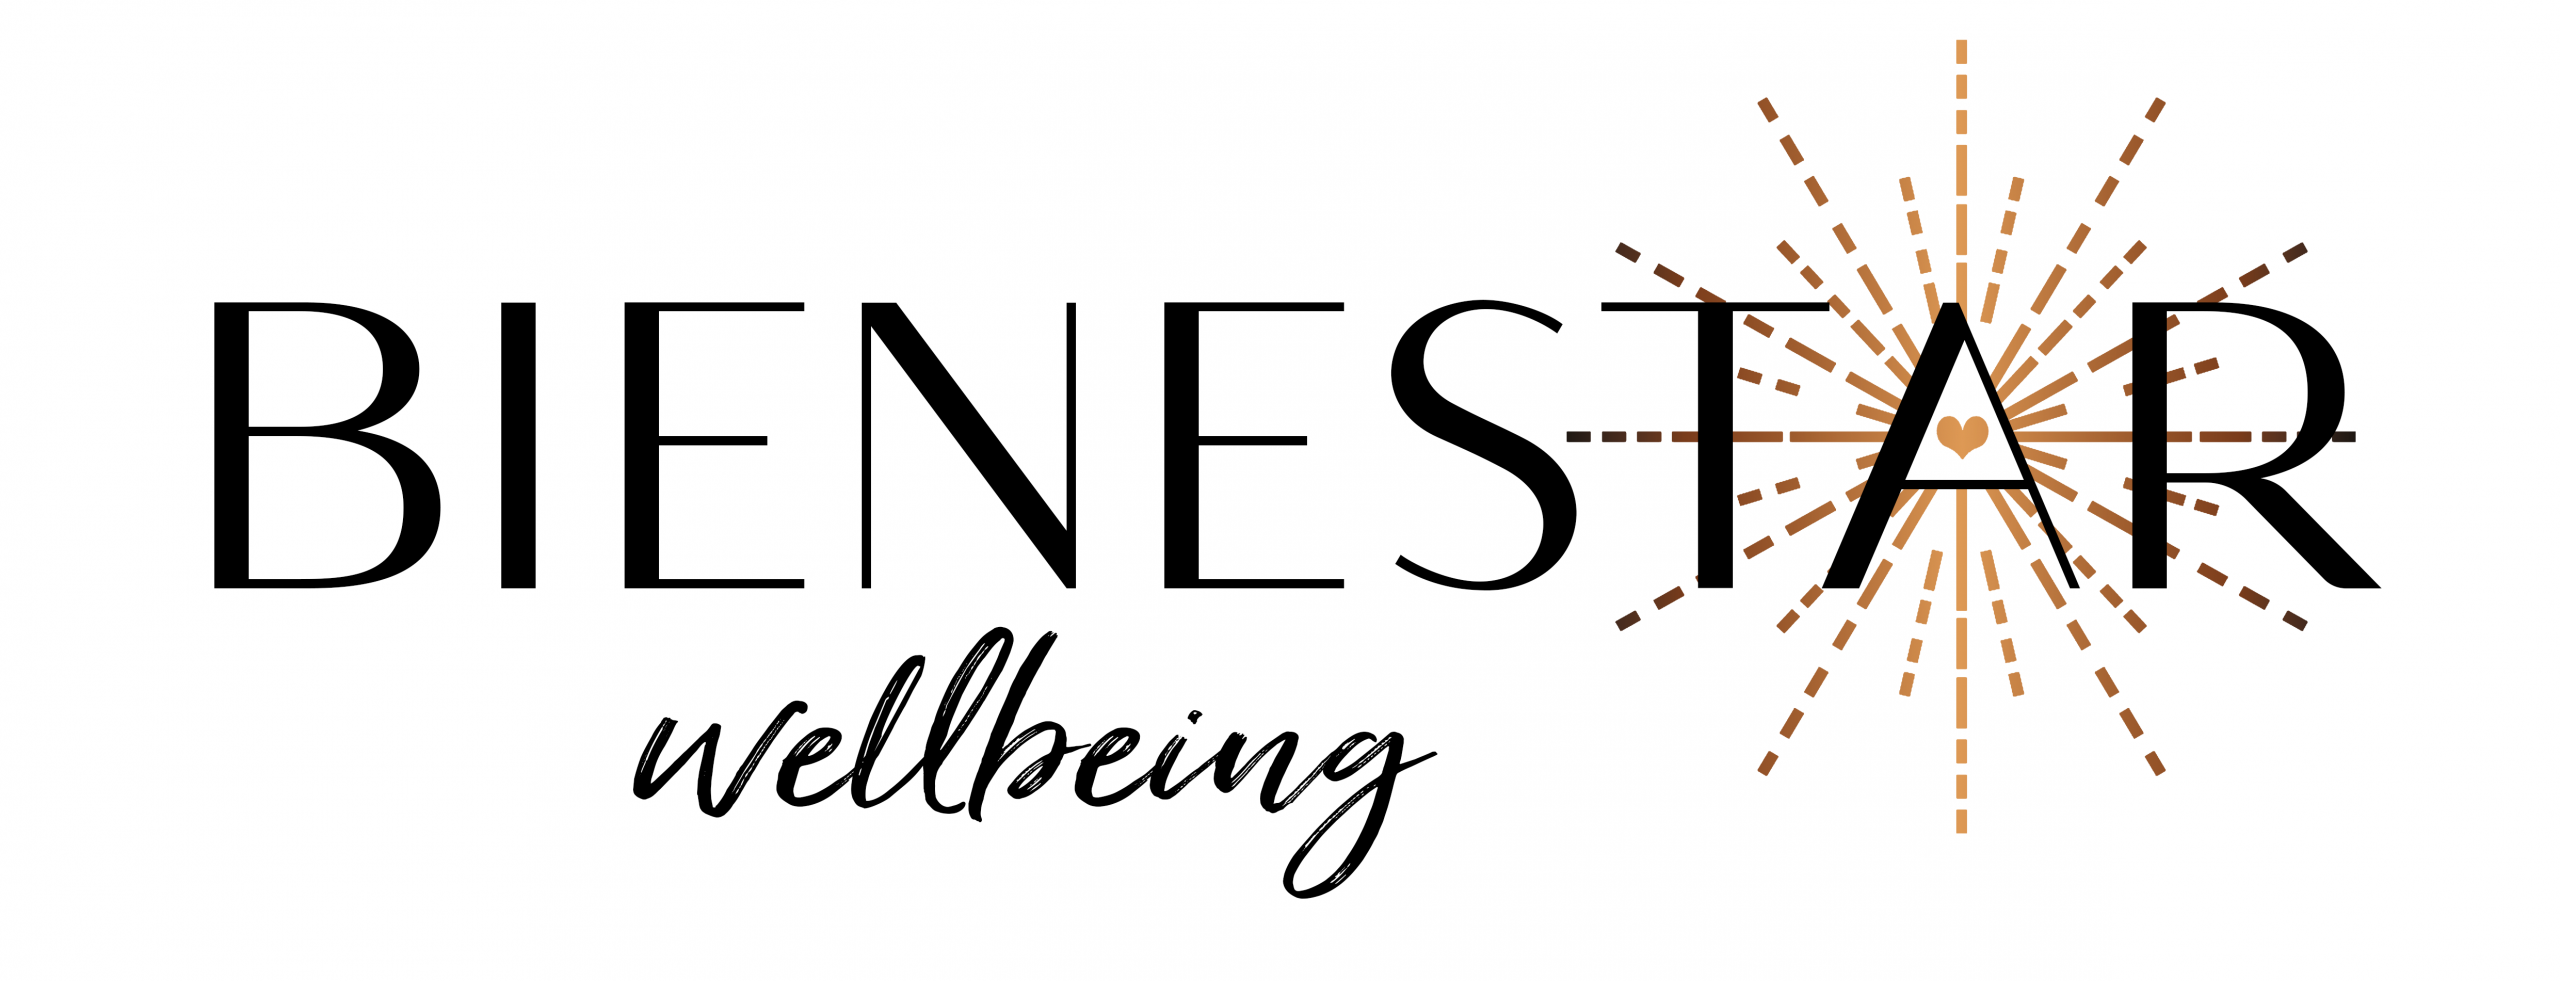 Bienestar Wellbeing - Change Your Life